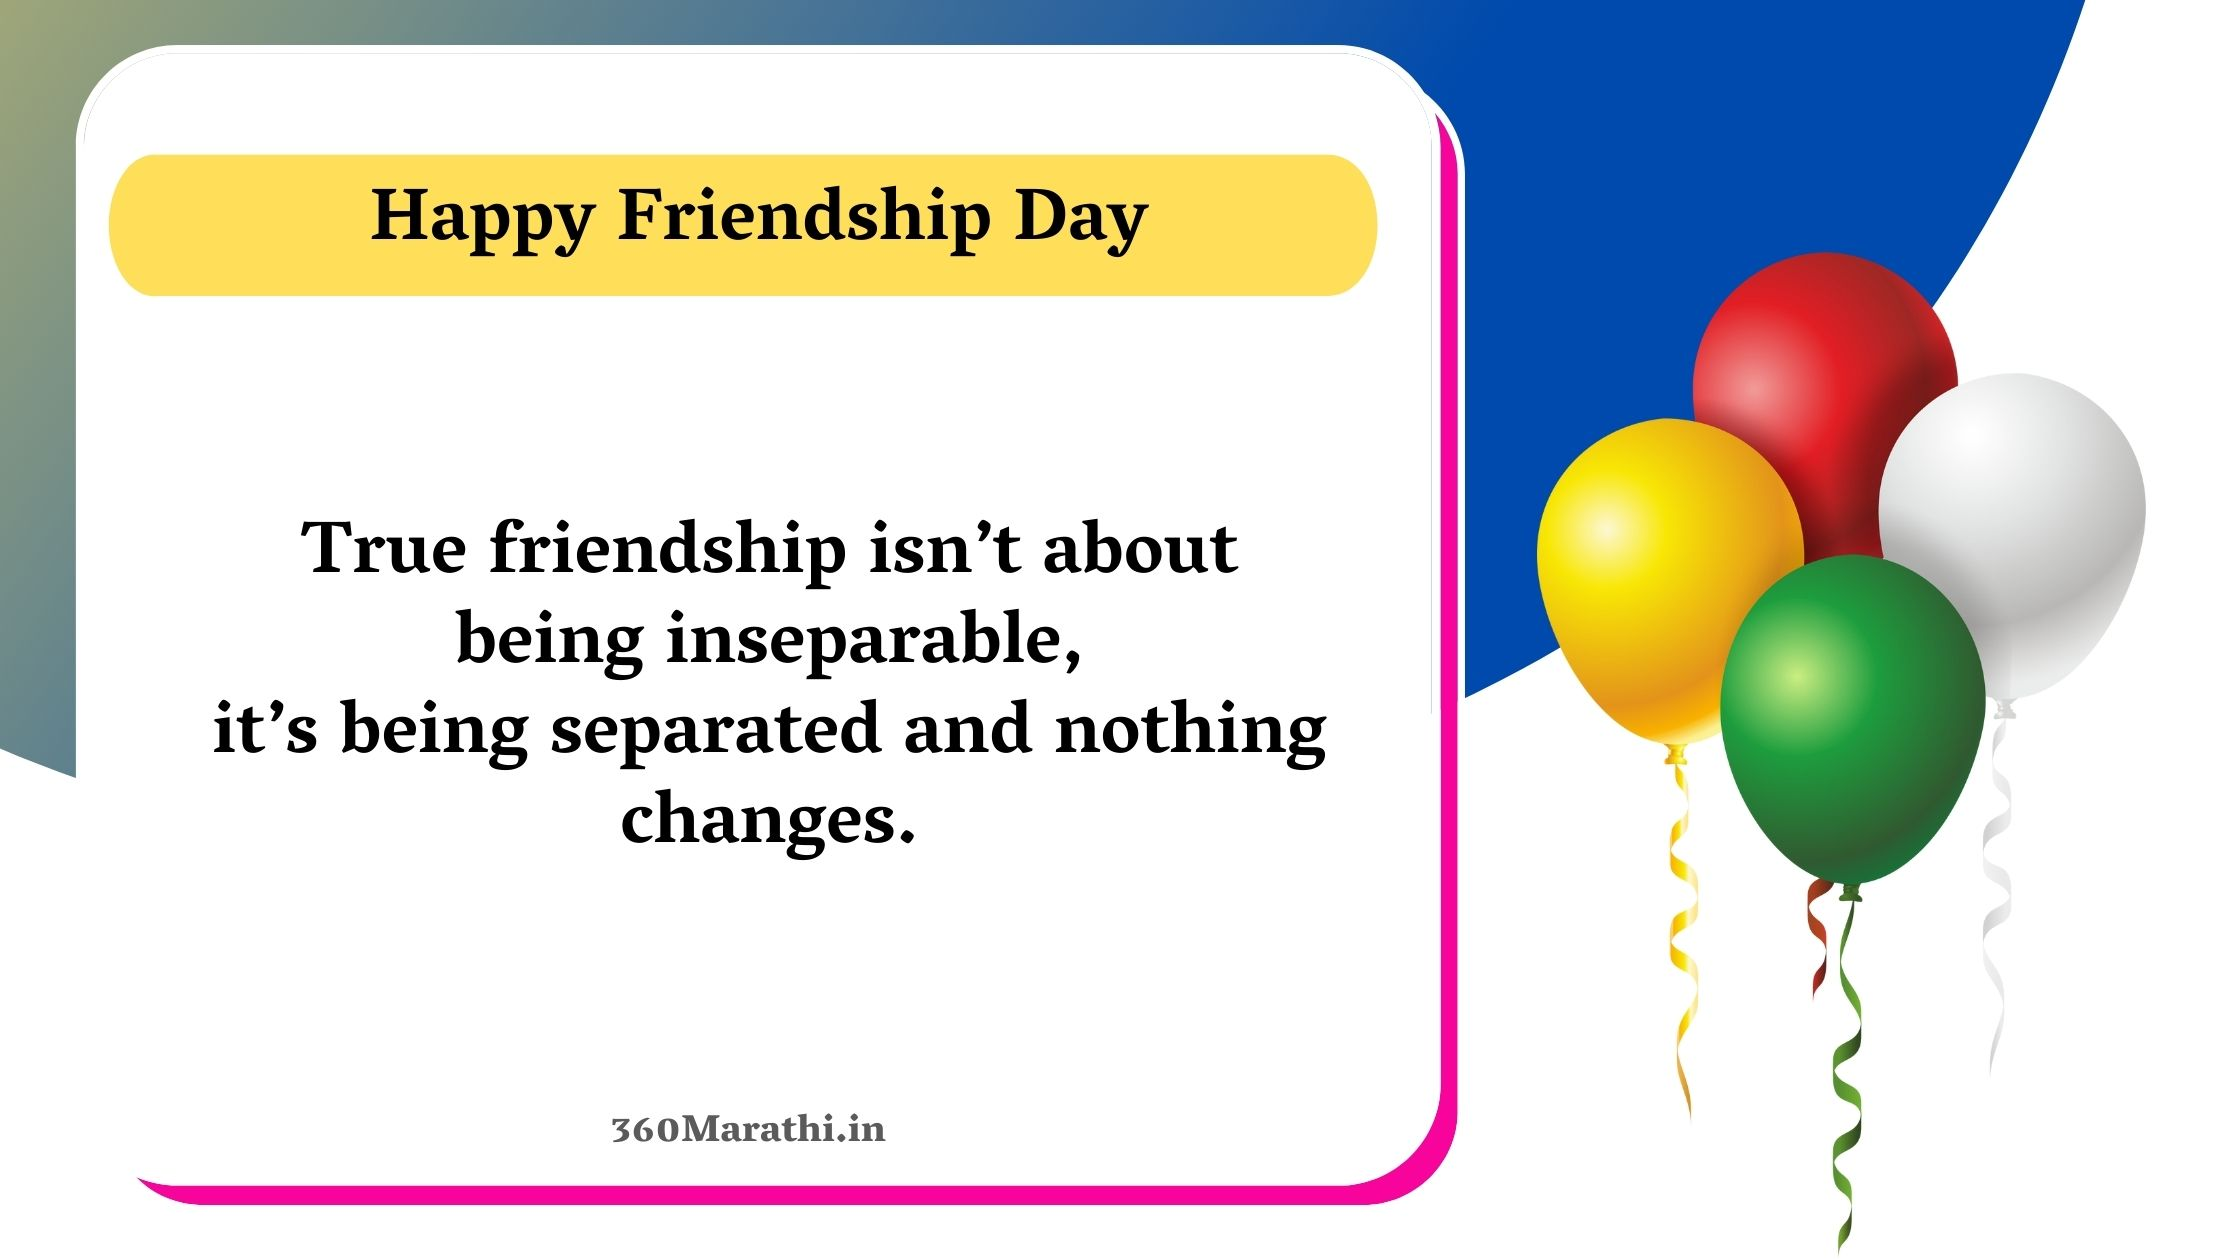 Happy Friendship Day images 2021